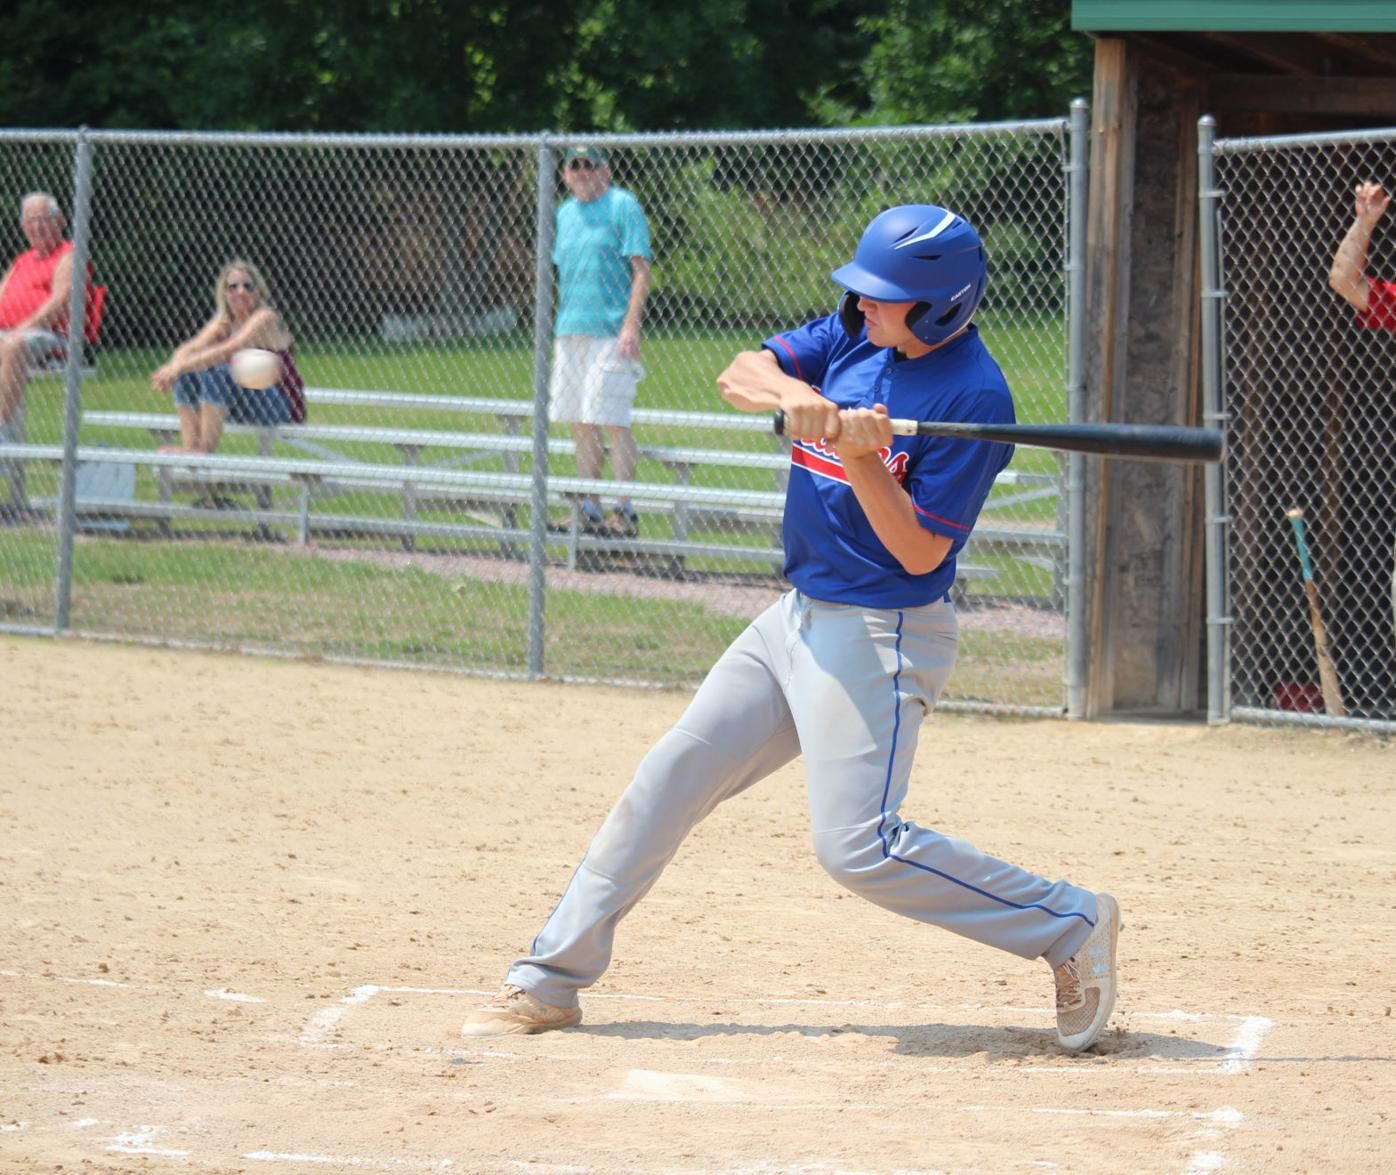 Tough at the plate